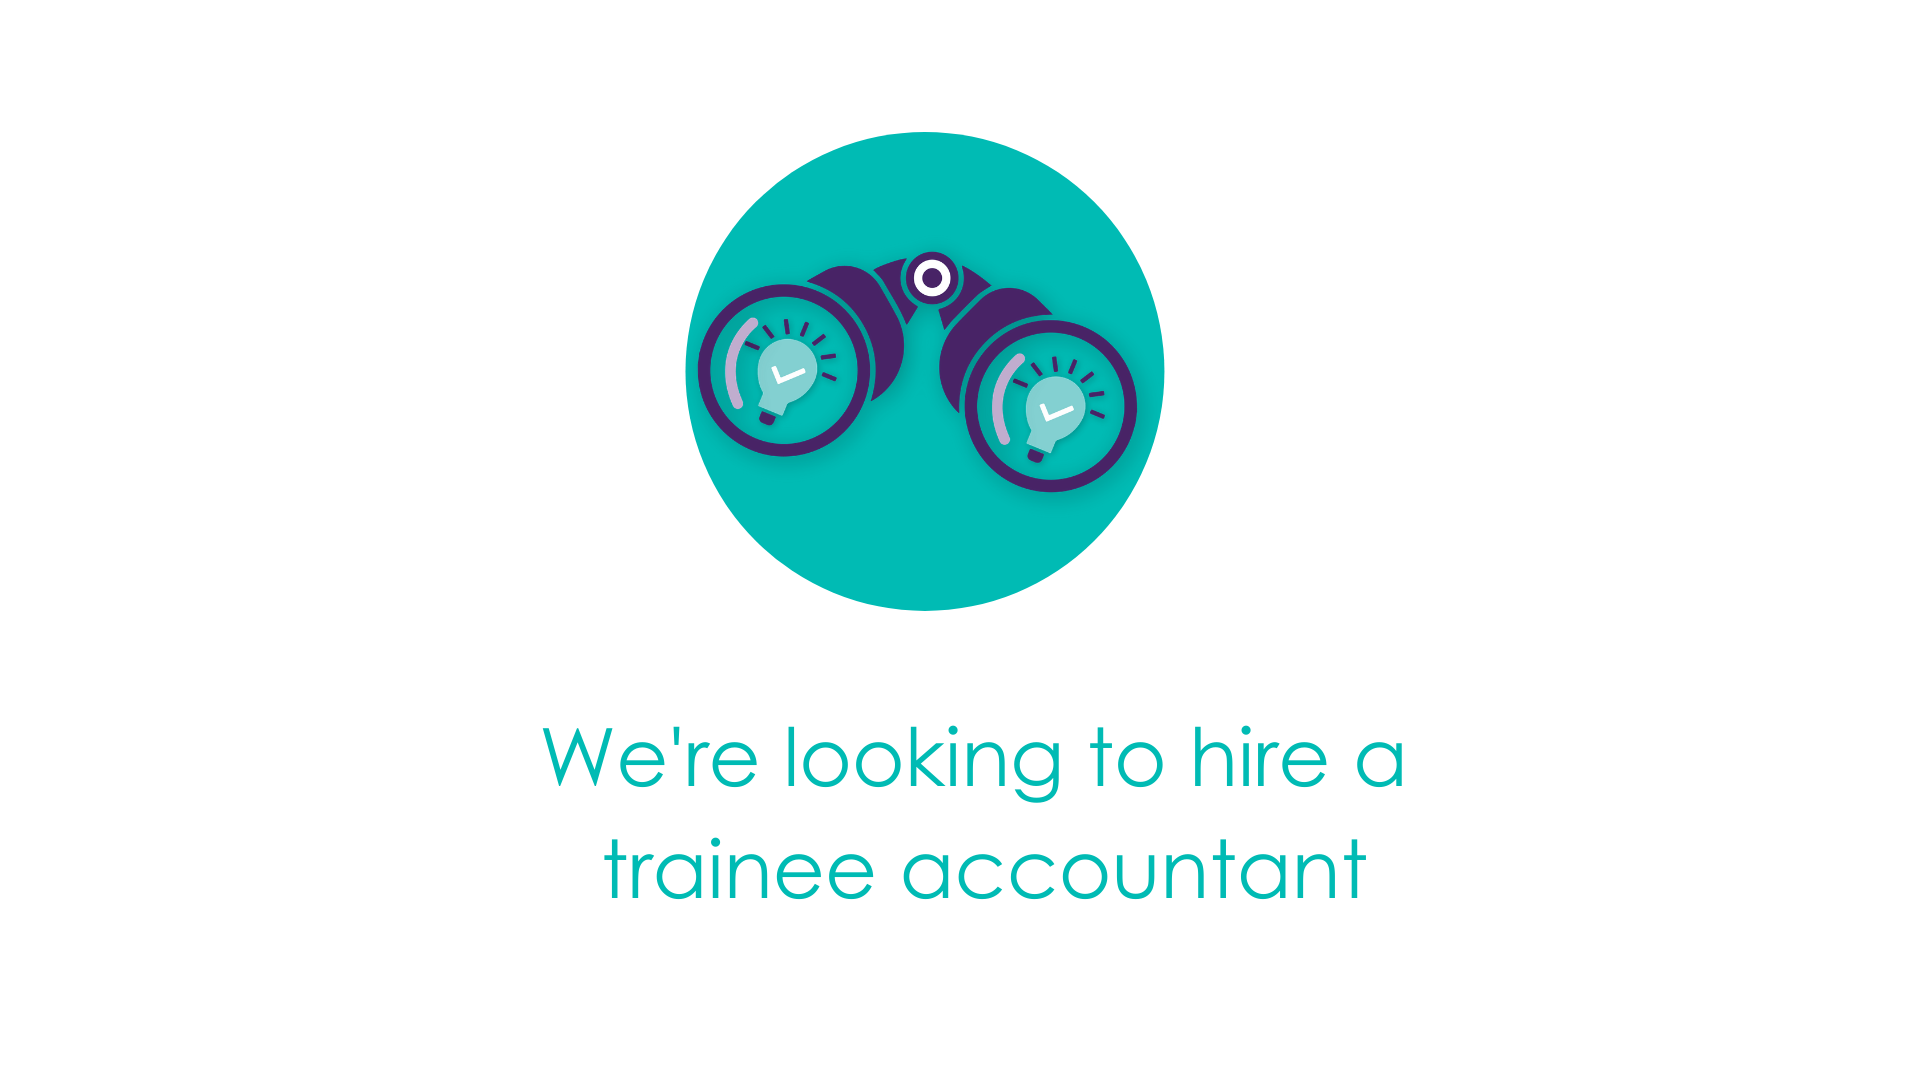 We're recruiting for a trainee accountant